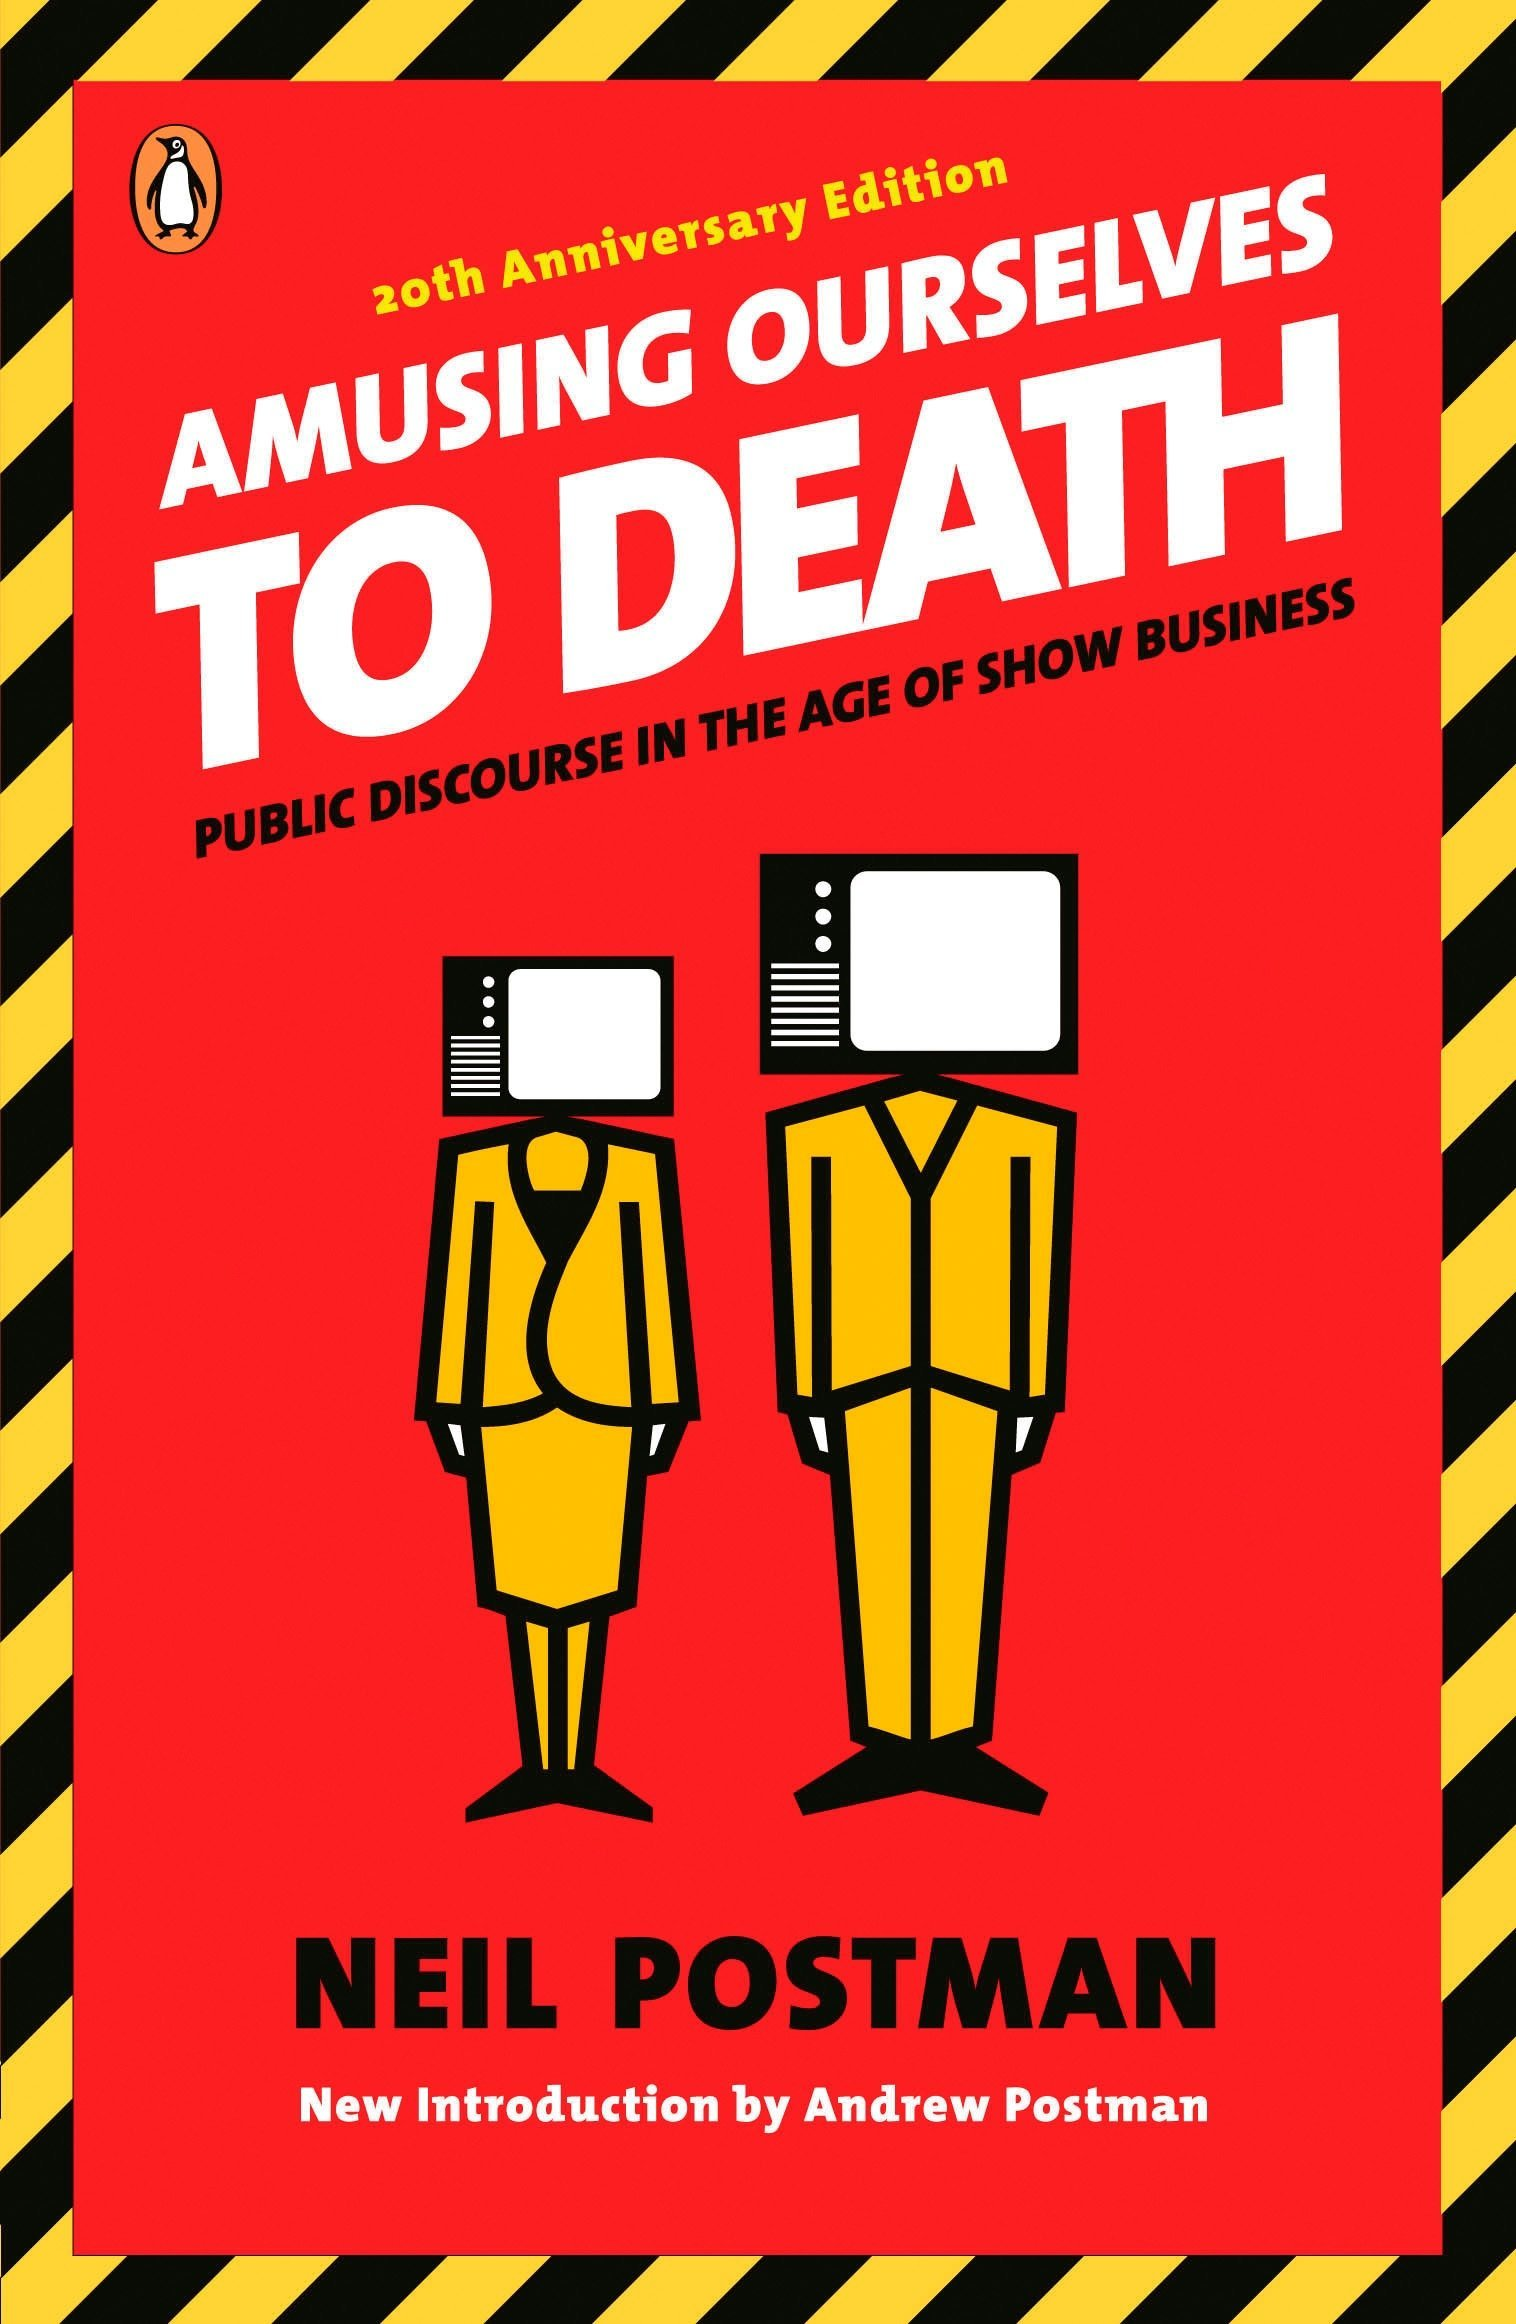 Amusing Ourselves to Death - by Neil PostmanWhat happens when media and politics become forms of entertainment? As our world begins to look more and more like Orwell's 1984, Neil's Postman's essential guide to the modern media is more relevant than ever.Originally published in 1985, Neil Postman's groundbreaking polemic about the corrosive effects of television on our politics and public discourse has been hailed as a twenty-first-century book published in the twentieth century. Now, with television joined by more sophisticated electronic media—from the Internet to cell phones to DVDs—it has taken on even greater significance. Amusing Ourselves to Death is a prophetic look at what happens when politics, journalism, education, and even religion become subject to the demands of entertainment. It is also a blueprint for regaining control of our media, so that they can serve our highest goals.